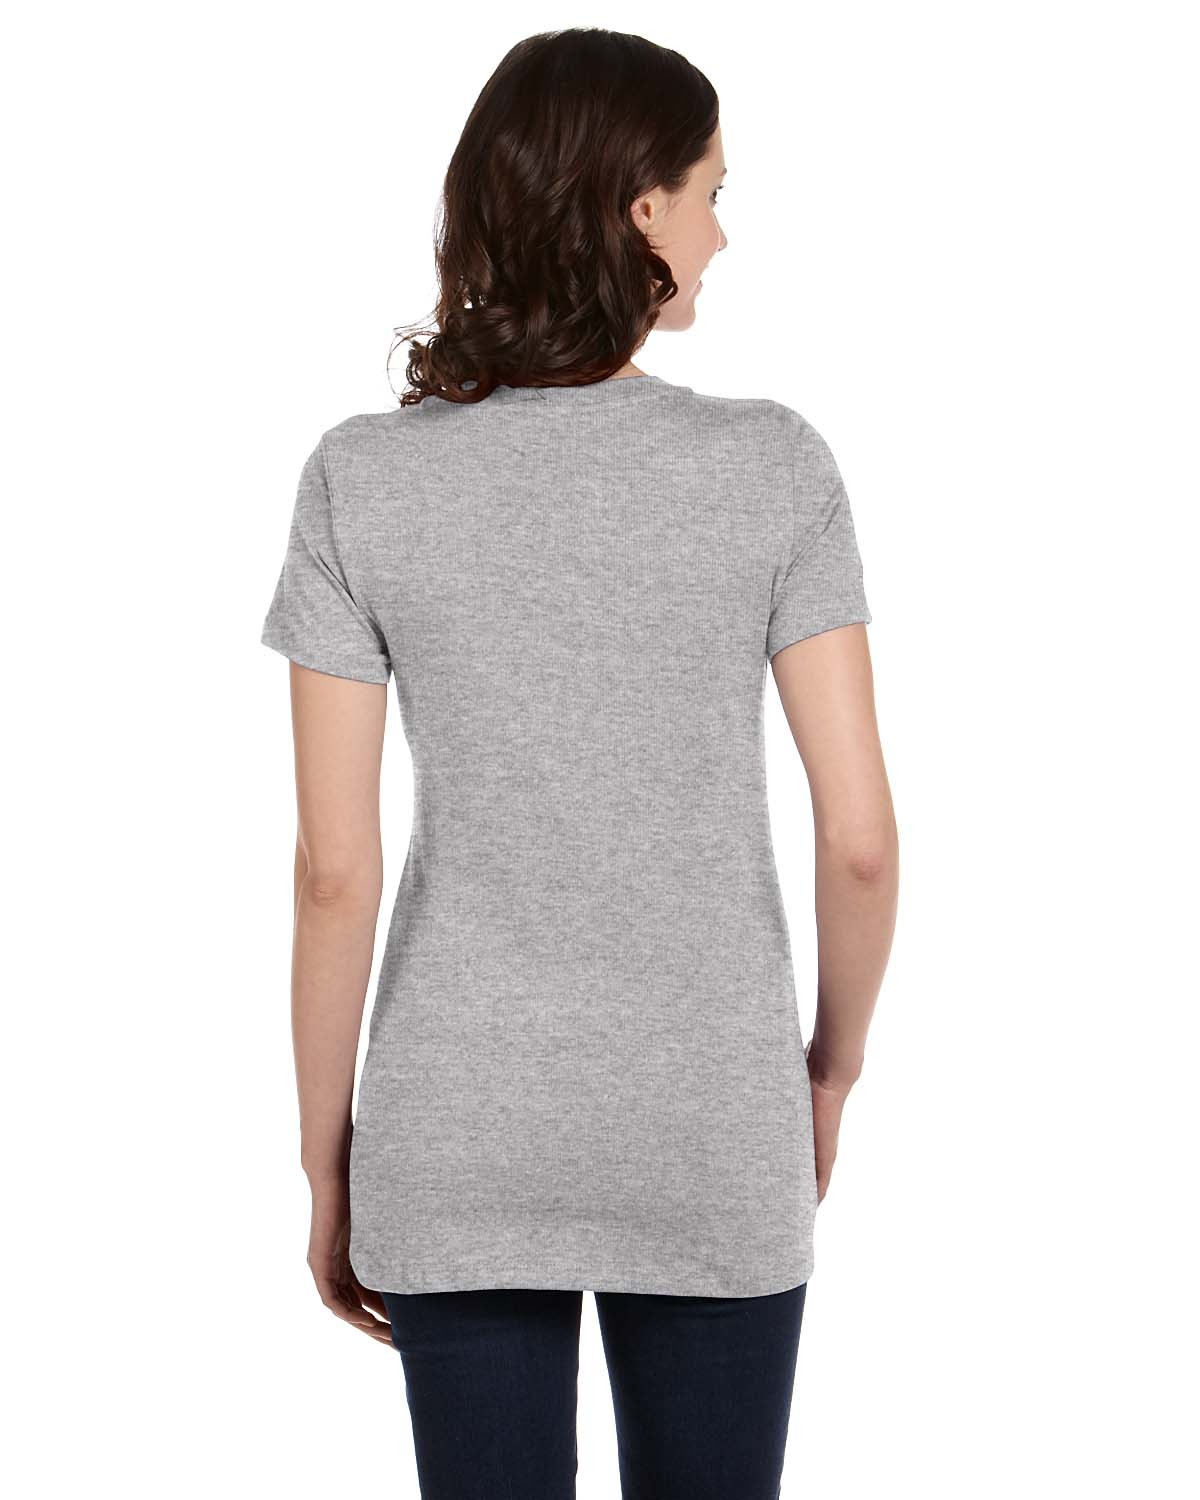 B6035 Bella + Canvas ATHLETIC HEATHER